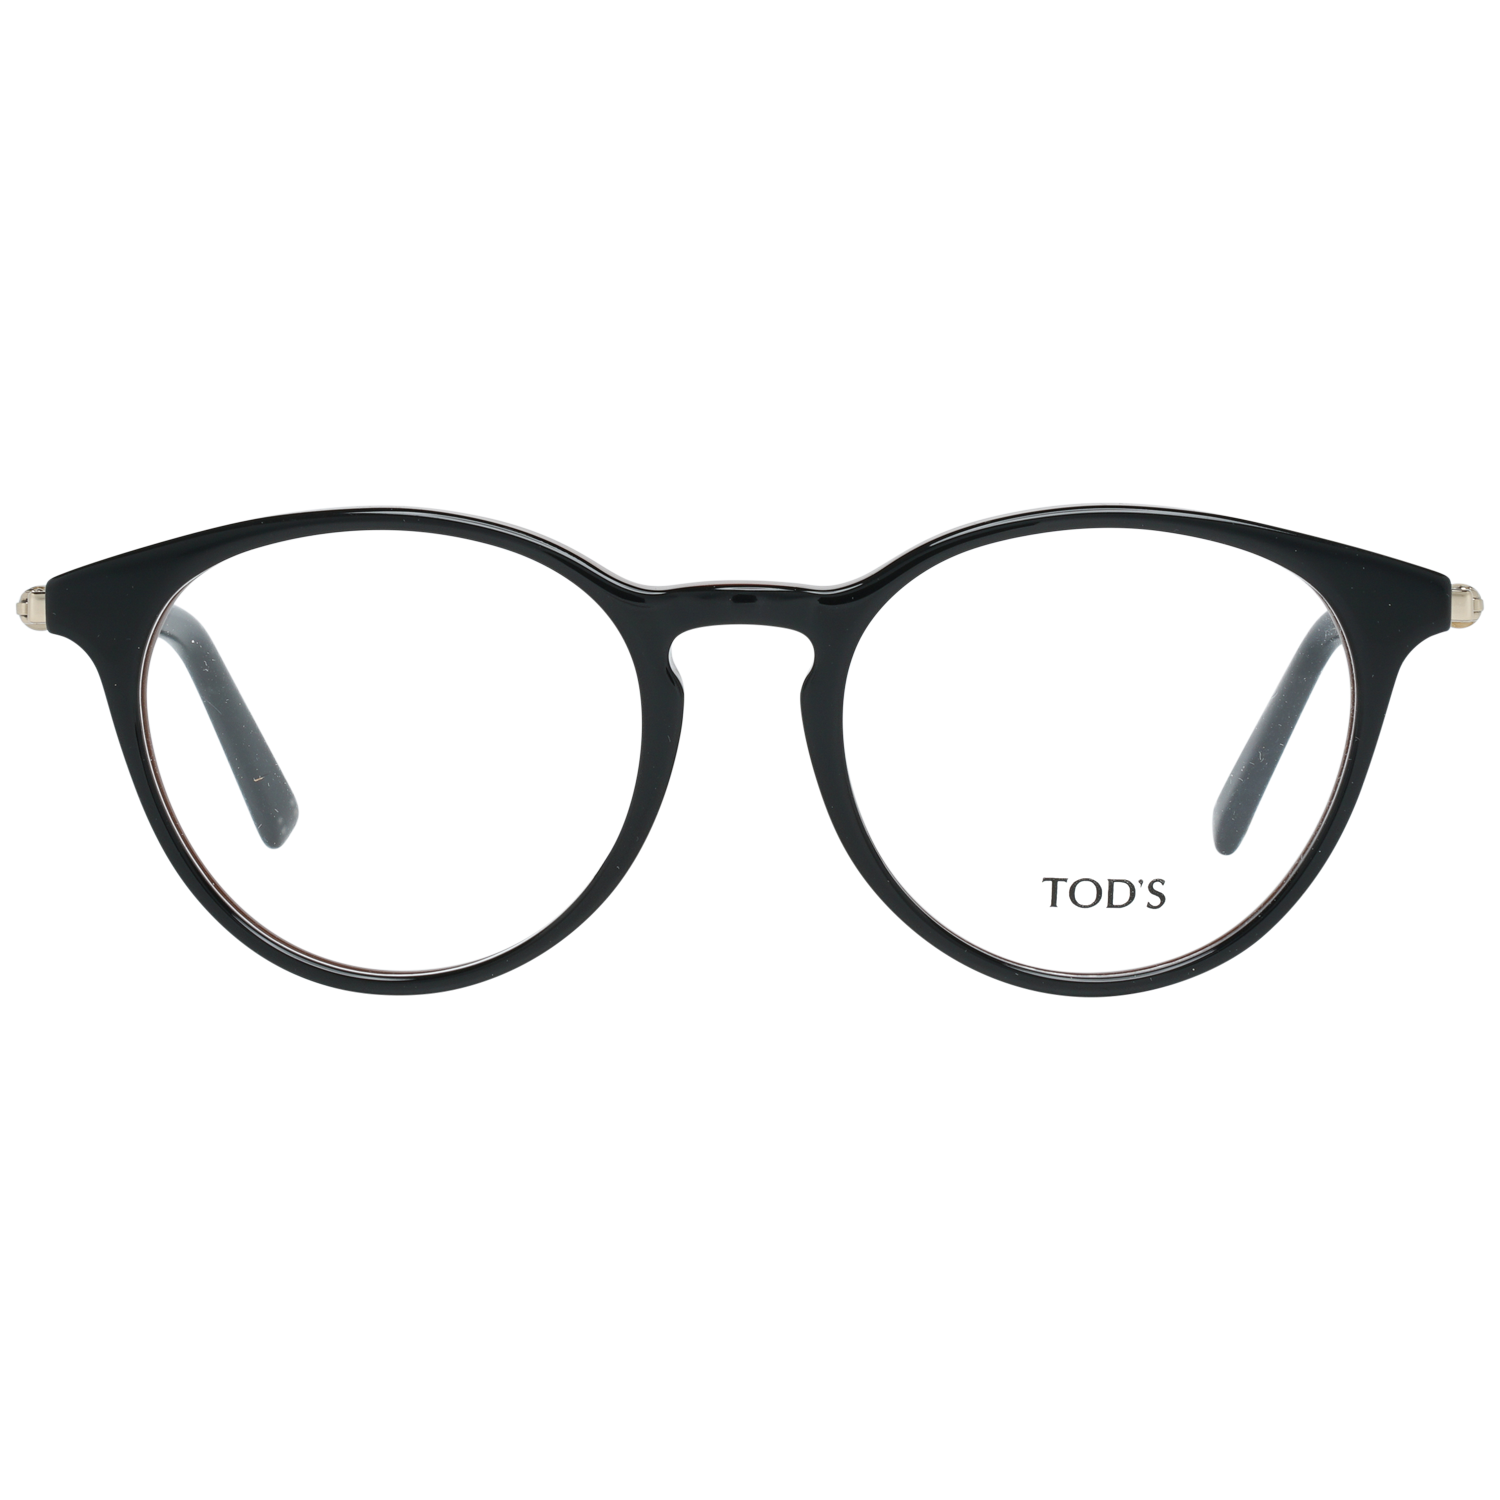 Tods Optical Frame TO5184 005 49 Women Black